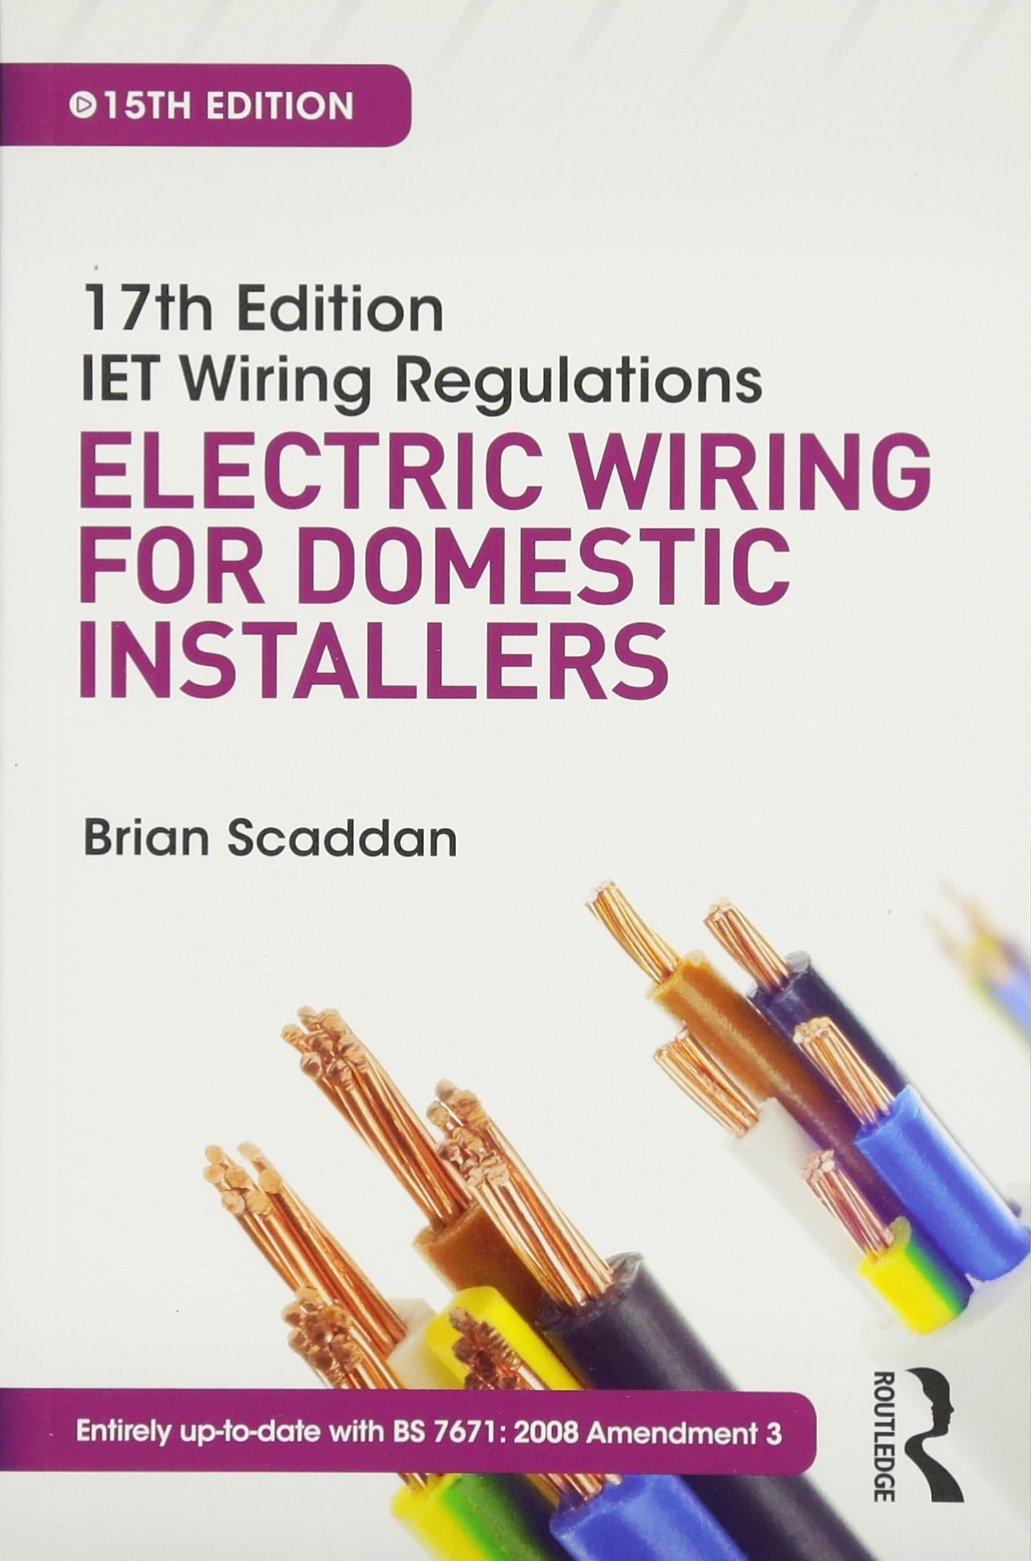 iet wiring regulations electric wiring for domestic installers rh amazon co uk domestic wiring regulations uk domestic wiring regulations south africa